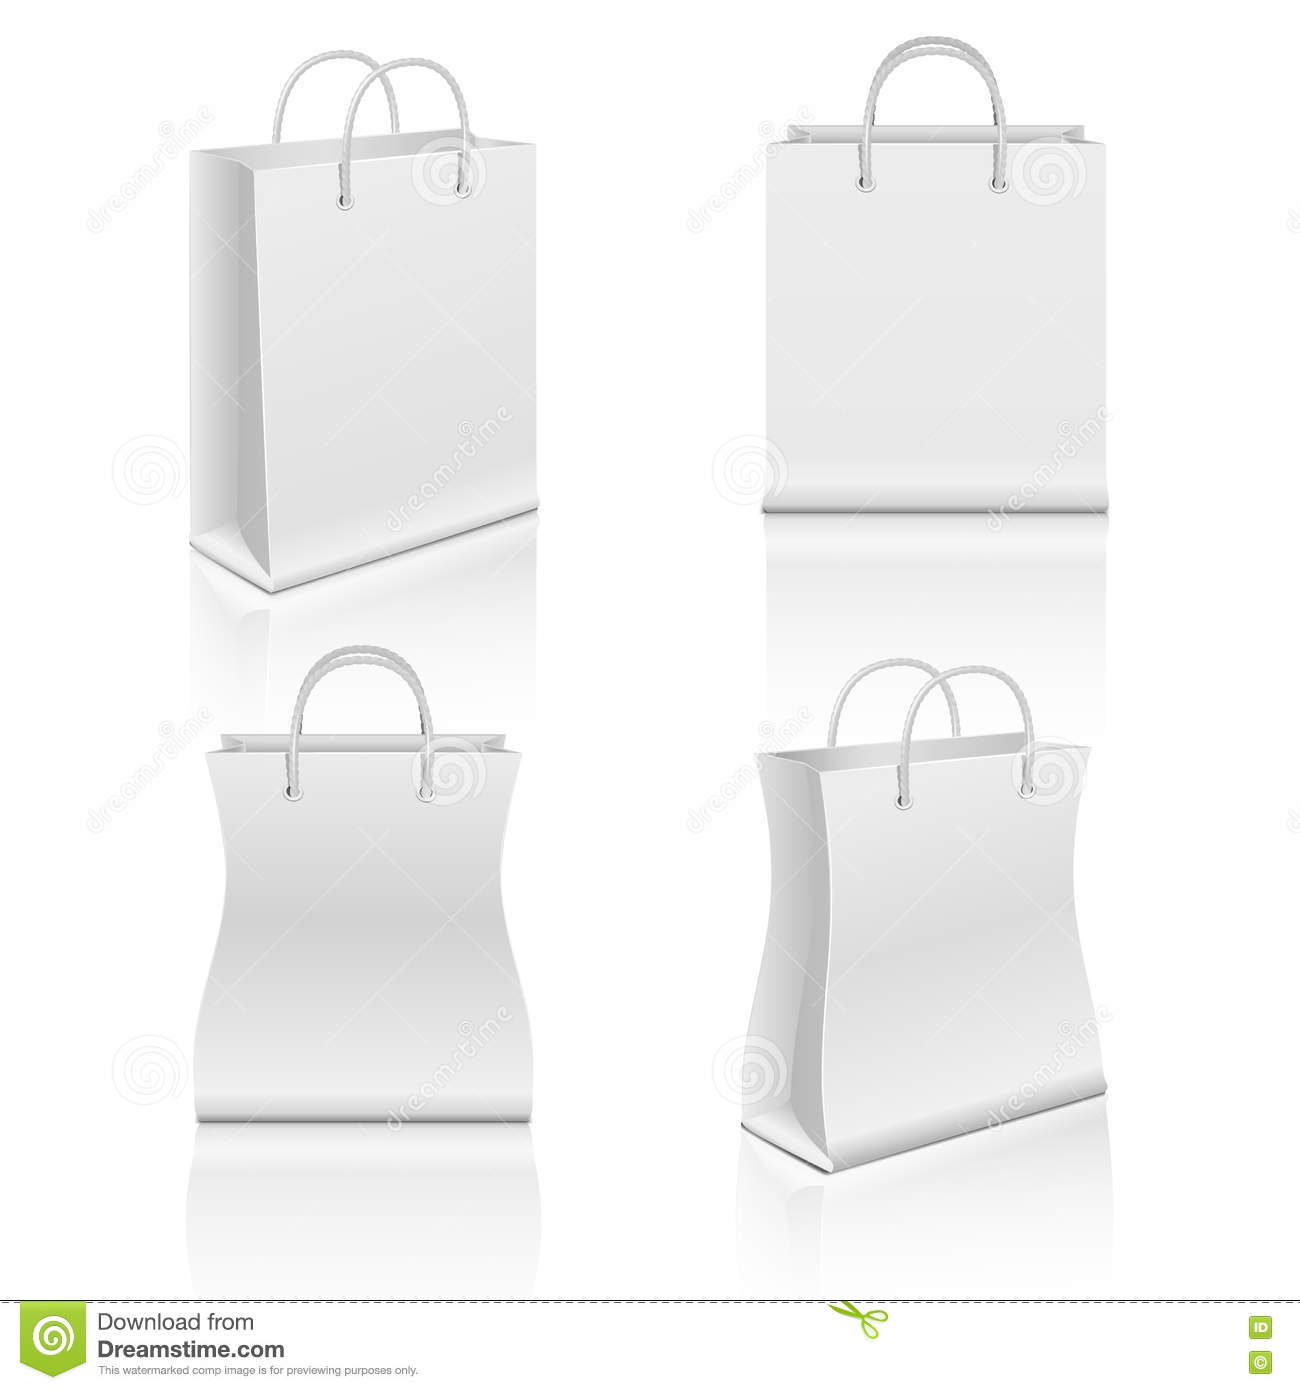 White Realistic Blank Paper Shopping Bags Vector Set Stock ...White Paper Bag Vector